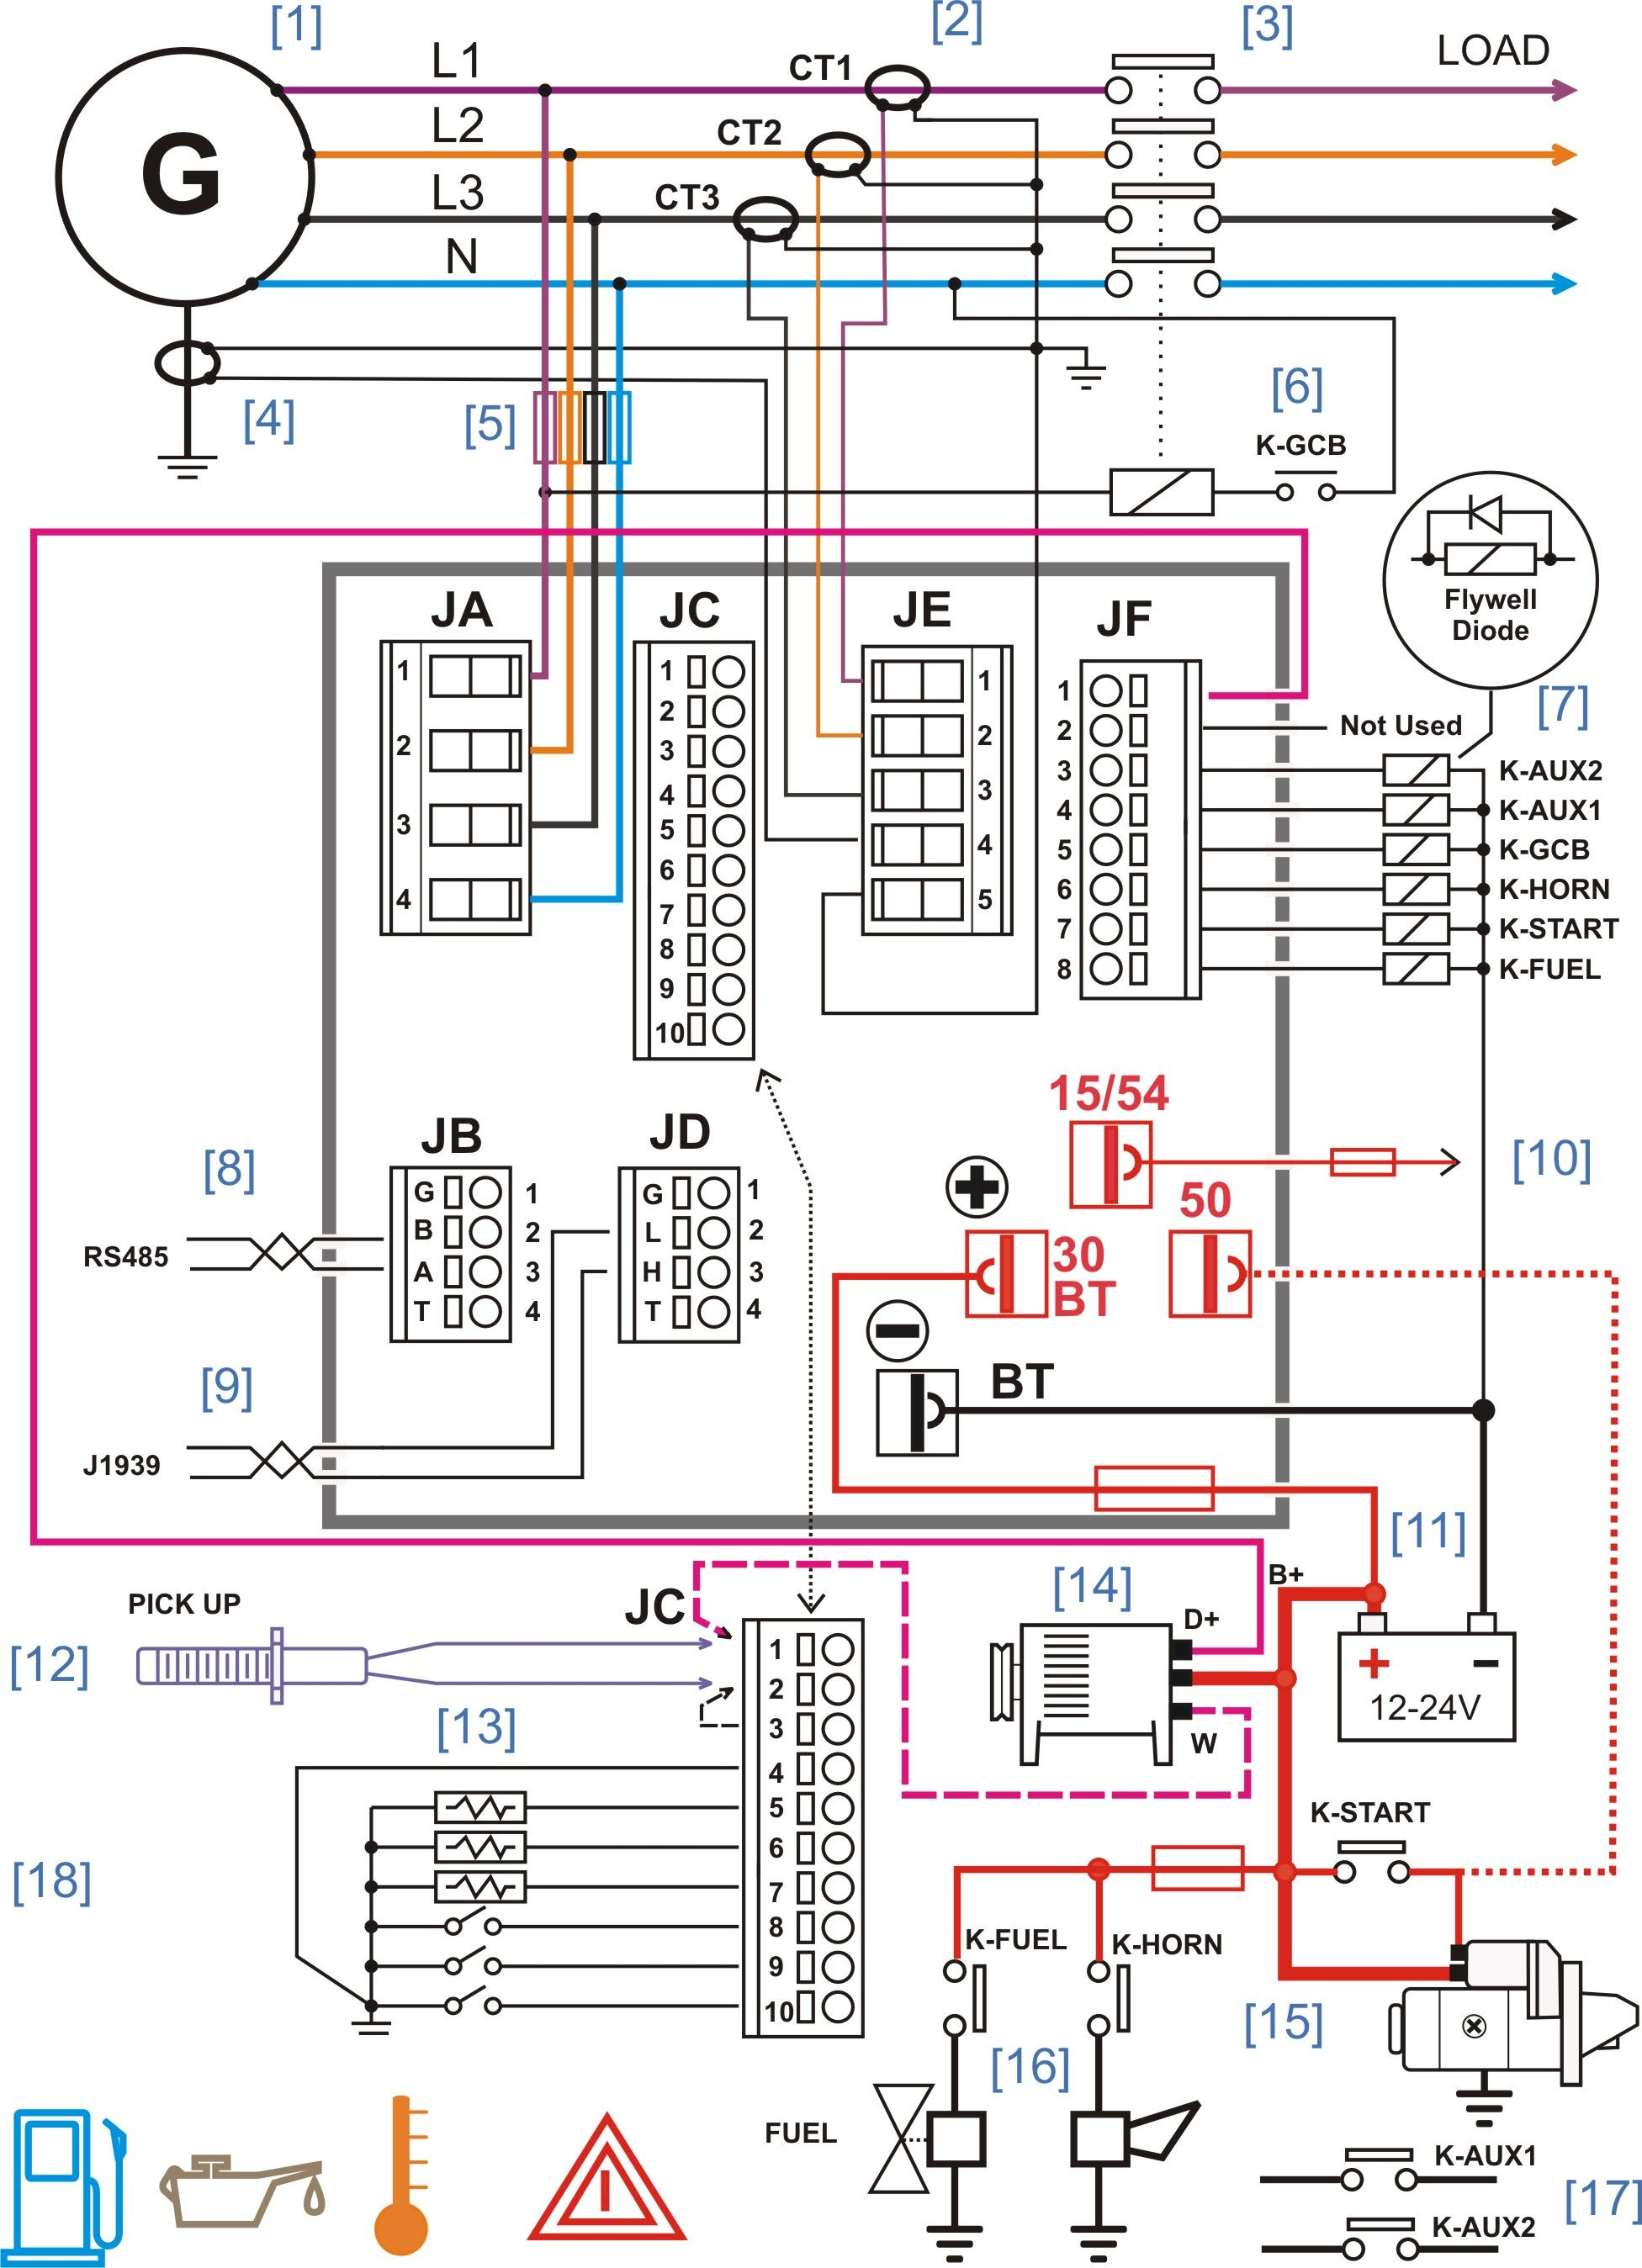 go control panel wiring diagram best car wiring diagram Go Control Panel Wiring Diagram go control panel wiring diagram best